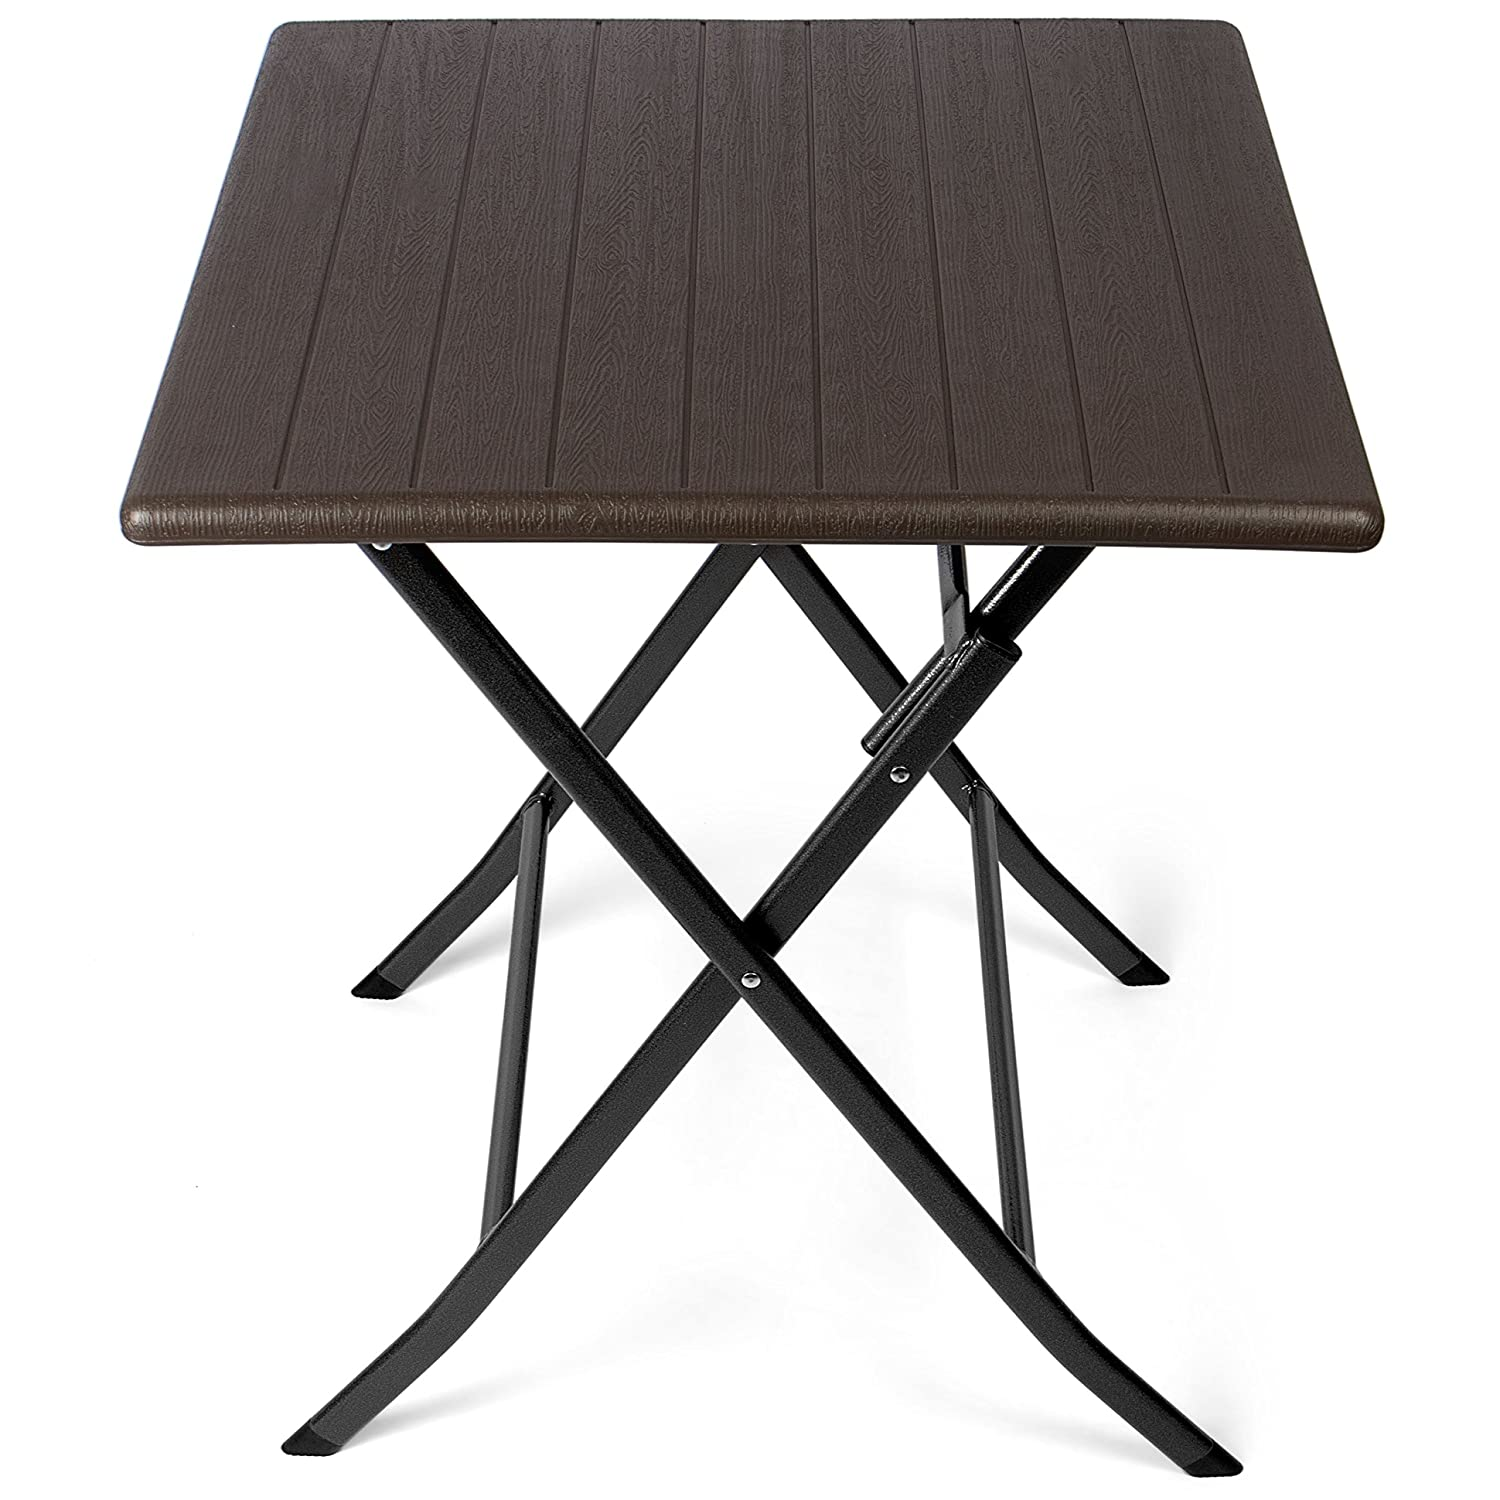 Park Alley PA-8991 Side Square Rattan Optic – Plastic Suitable for Garden, Terrace and Balcony – Bistro Table with Steel Frame, Black, 61.5 x 61.5 x 73 cm